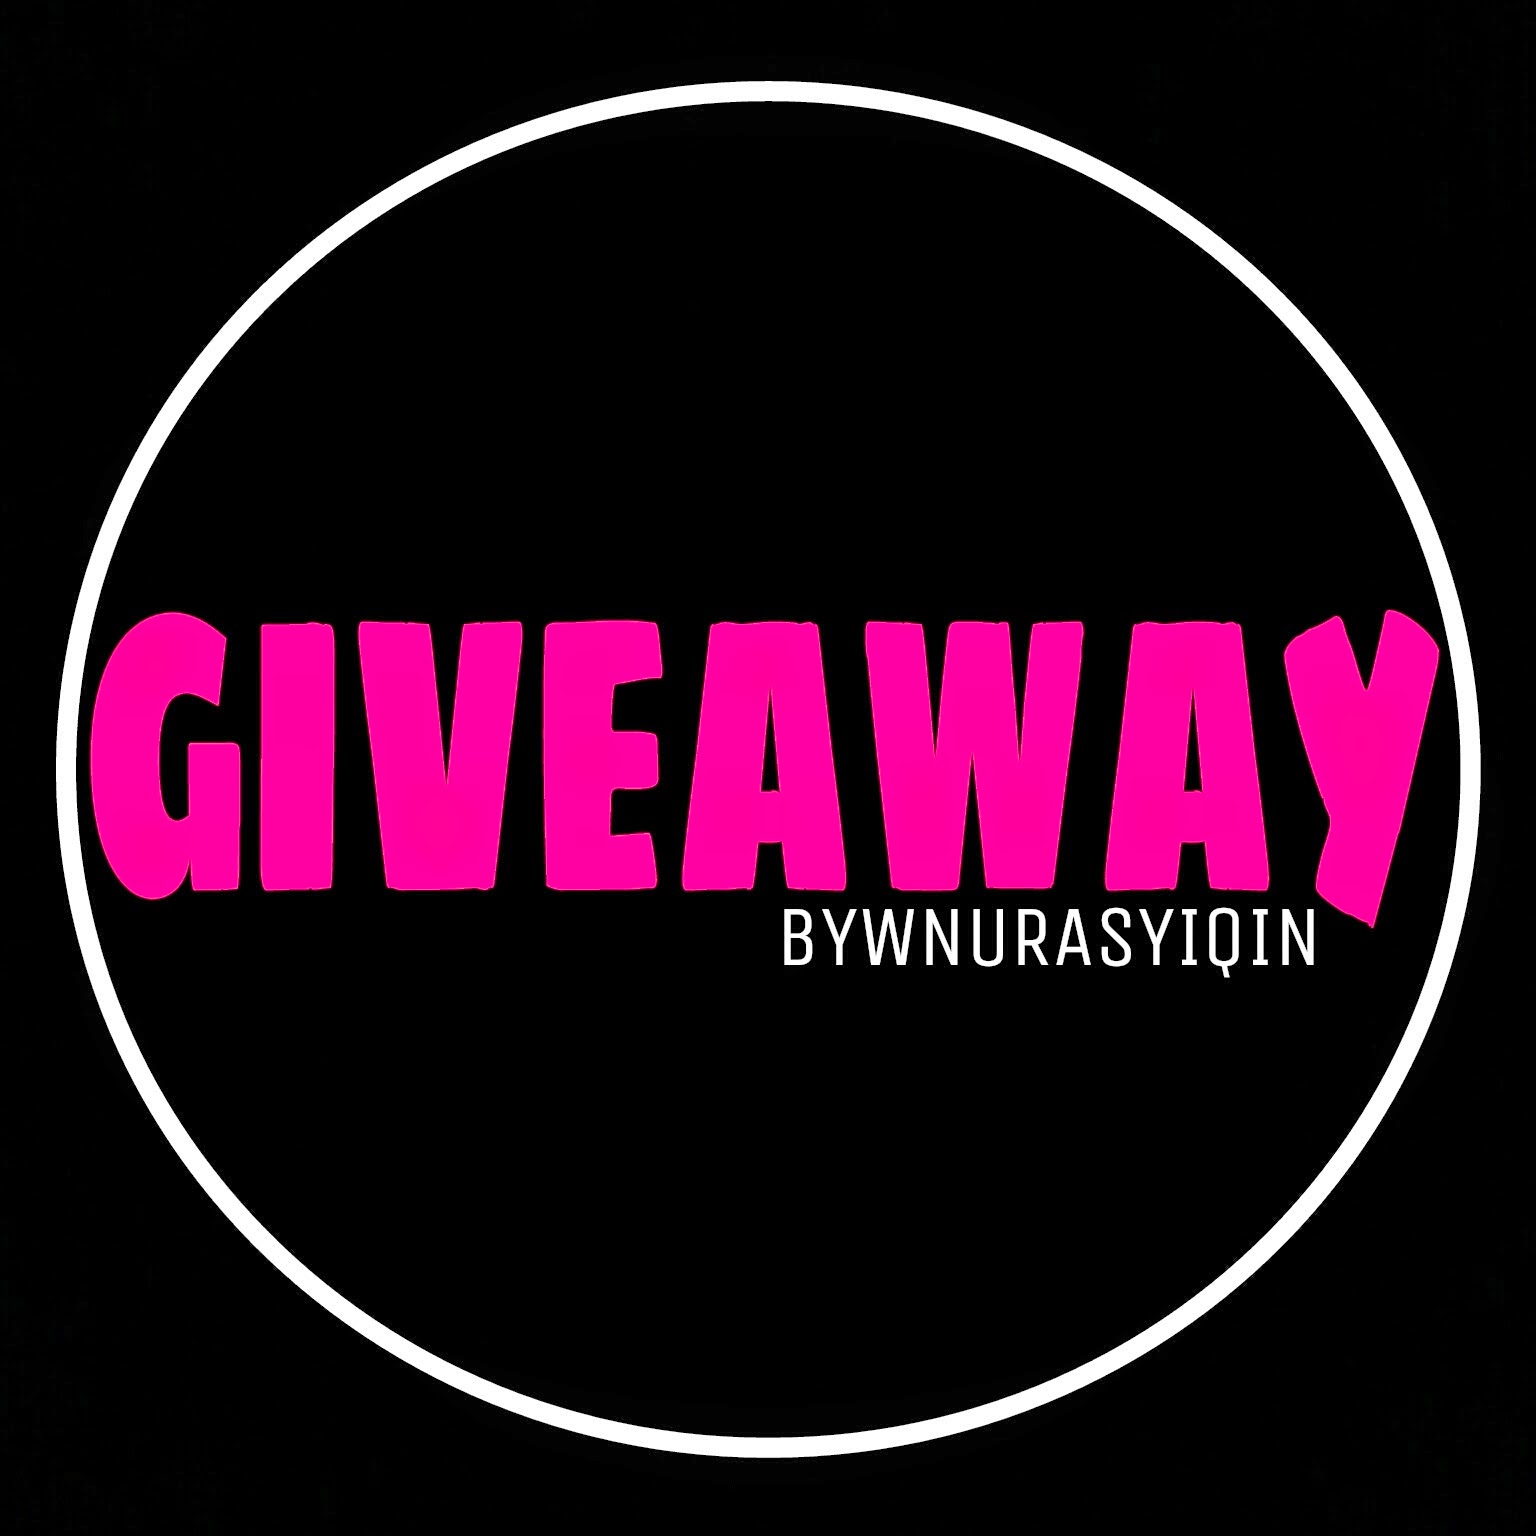 http://bywnurasyiqin.blogspot.com/2014/09/first-giveaway-by-wnurasyiqin.html